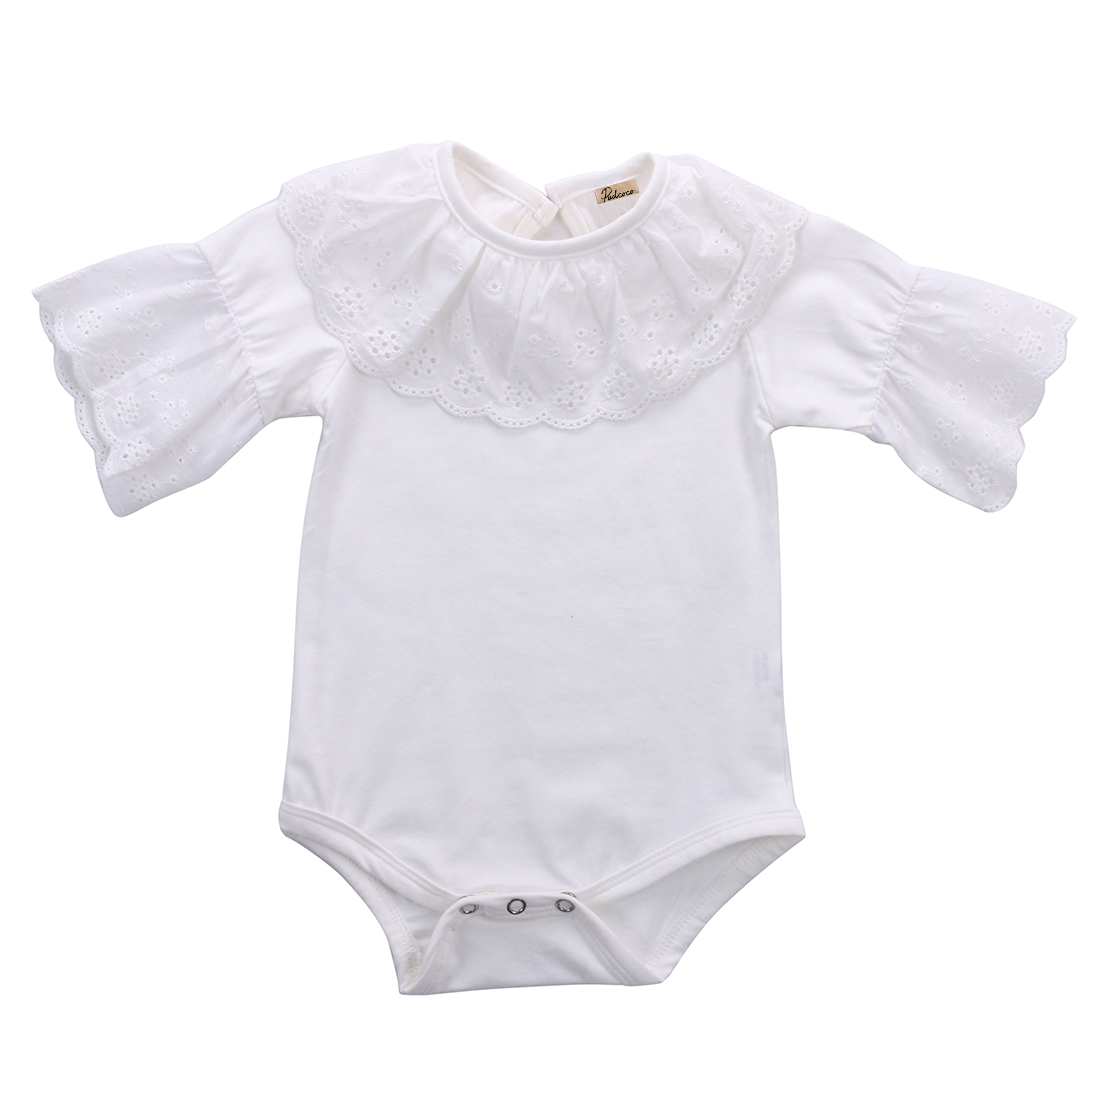 Lace Collar Baby Girls Kids Clothes Short Sleeve Romper Jumpsuit One-pieces Fashion Lovely Cute 2 Colors Solid Outfits